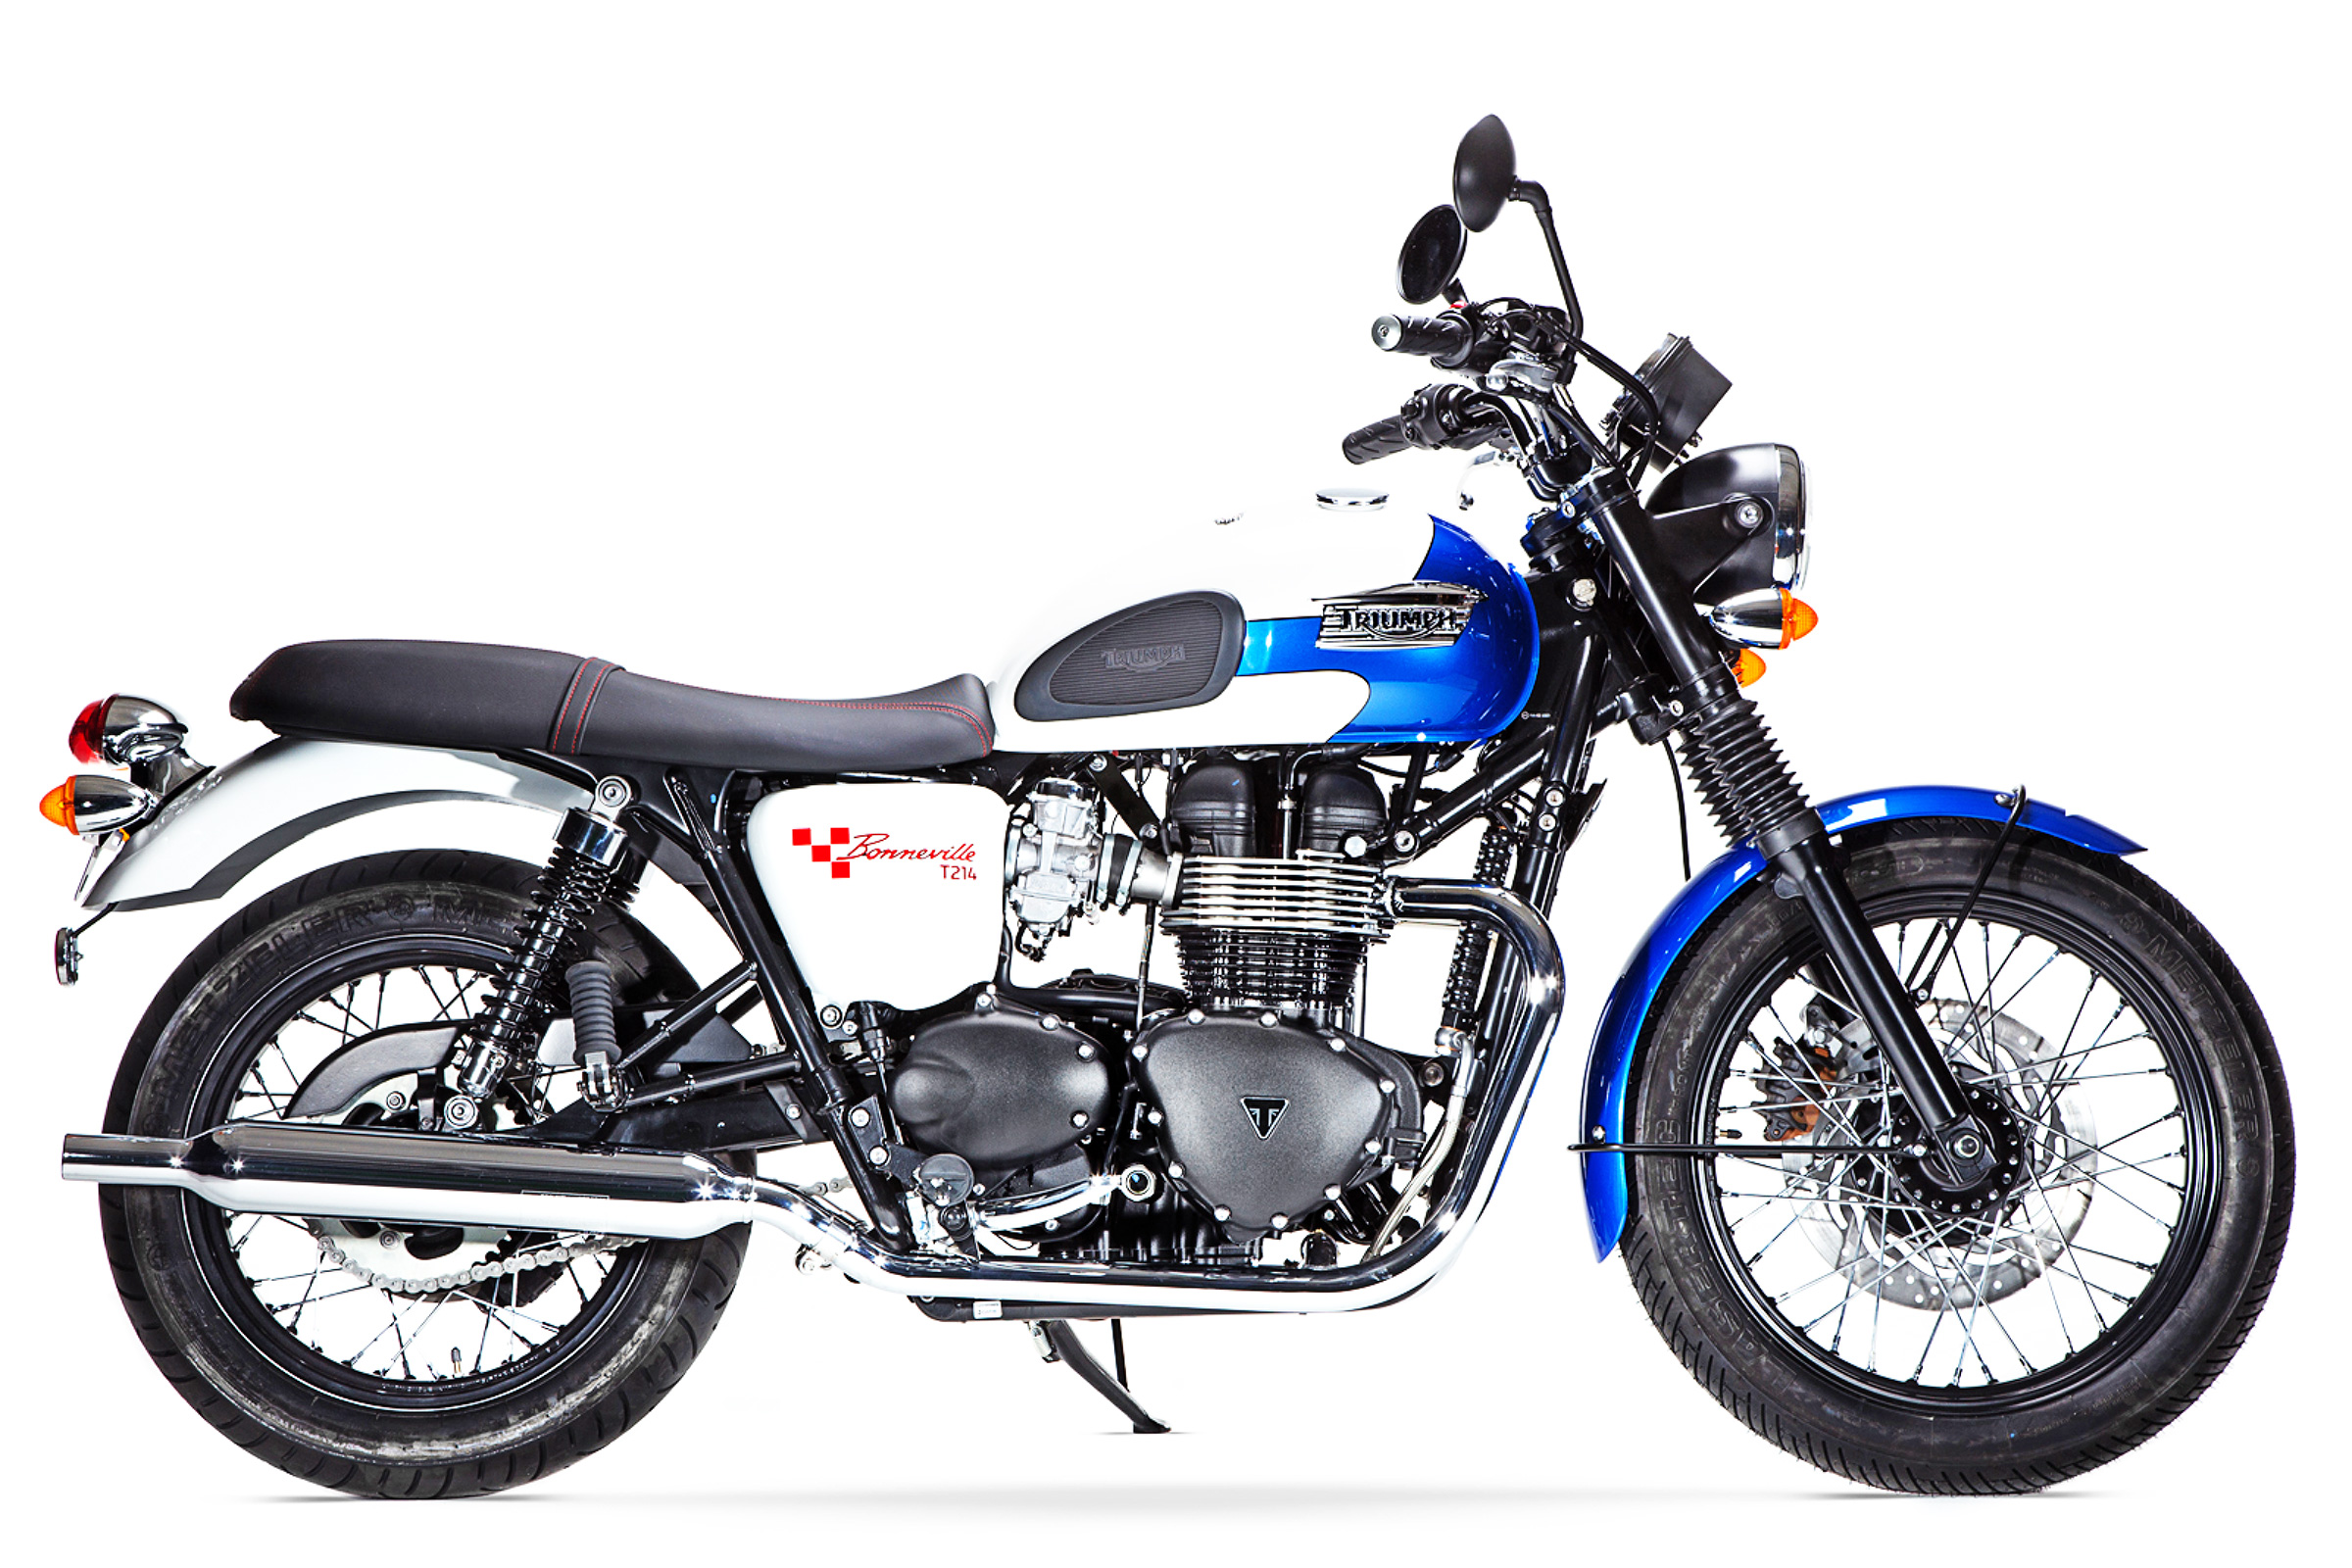 Мотоцикл Triumph Bonneville T214 Land Speed LE 2015